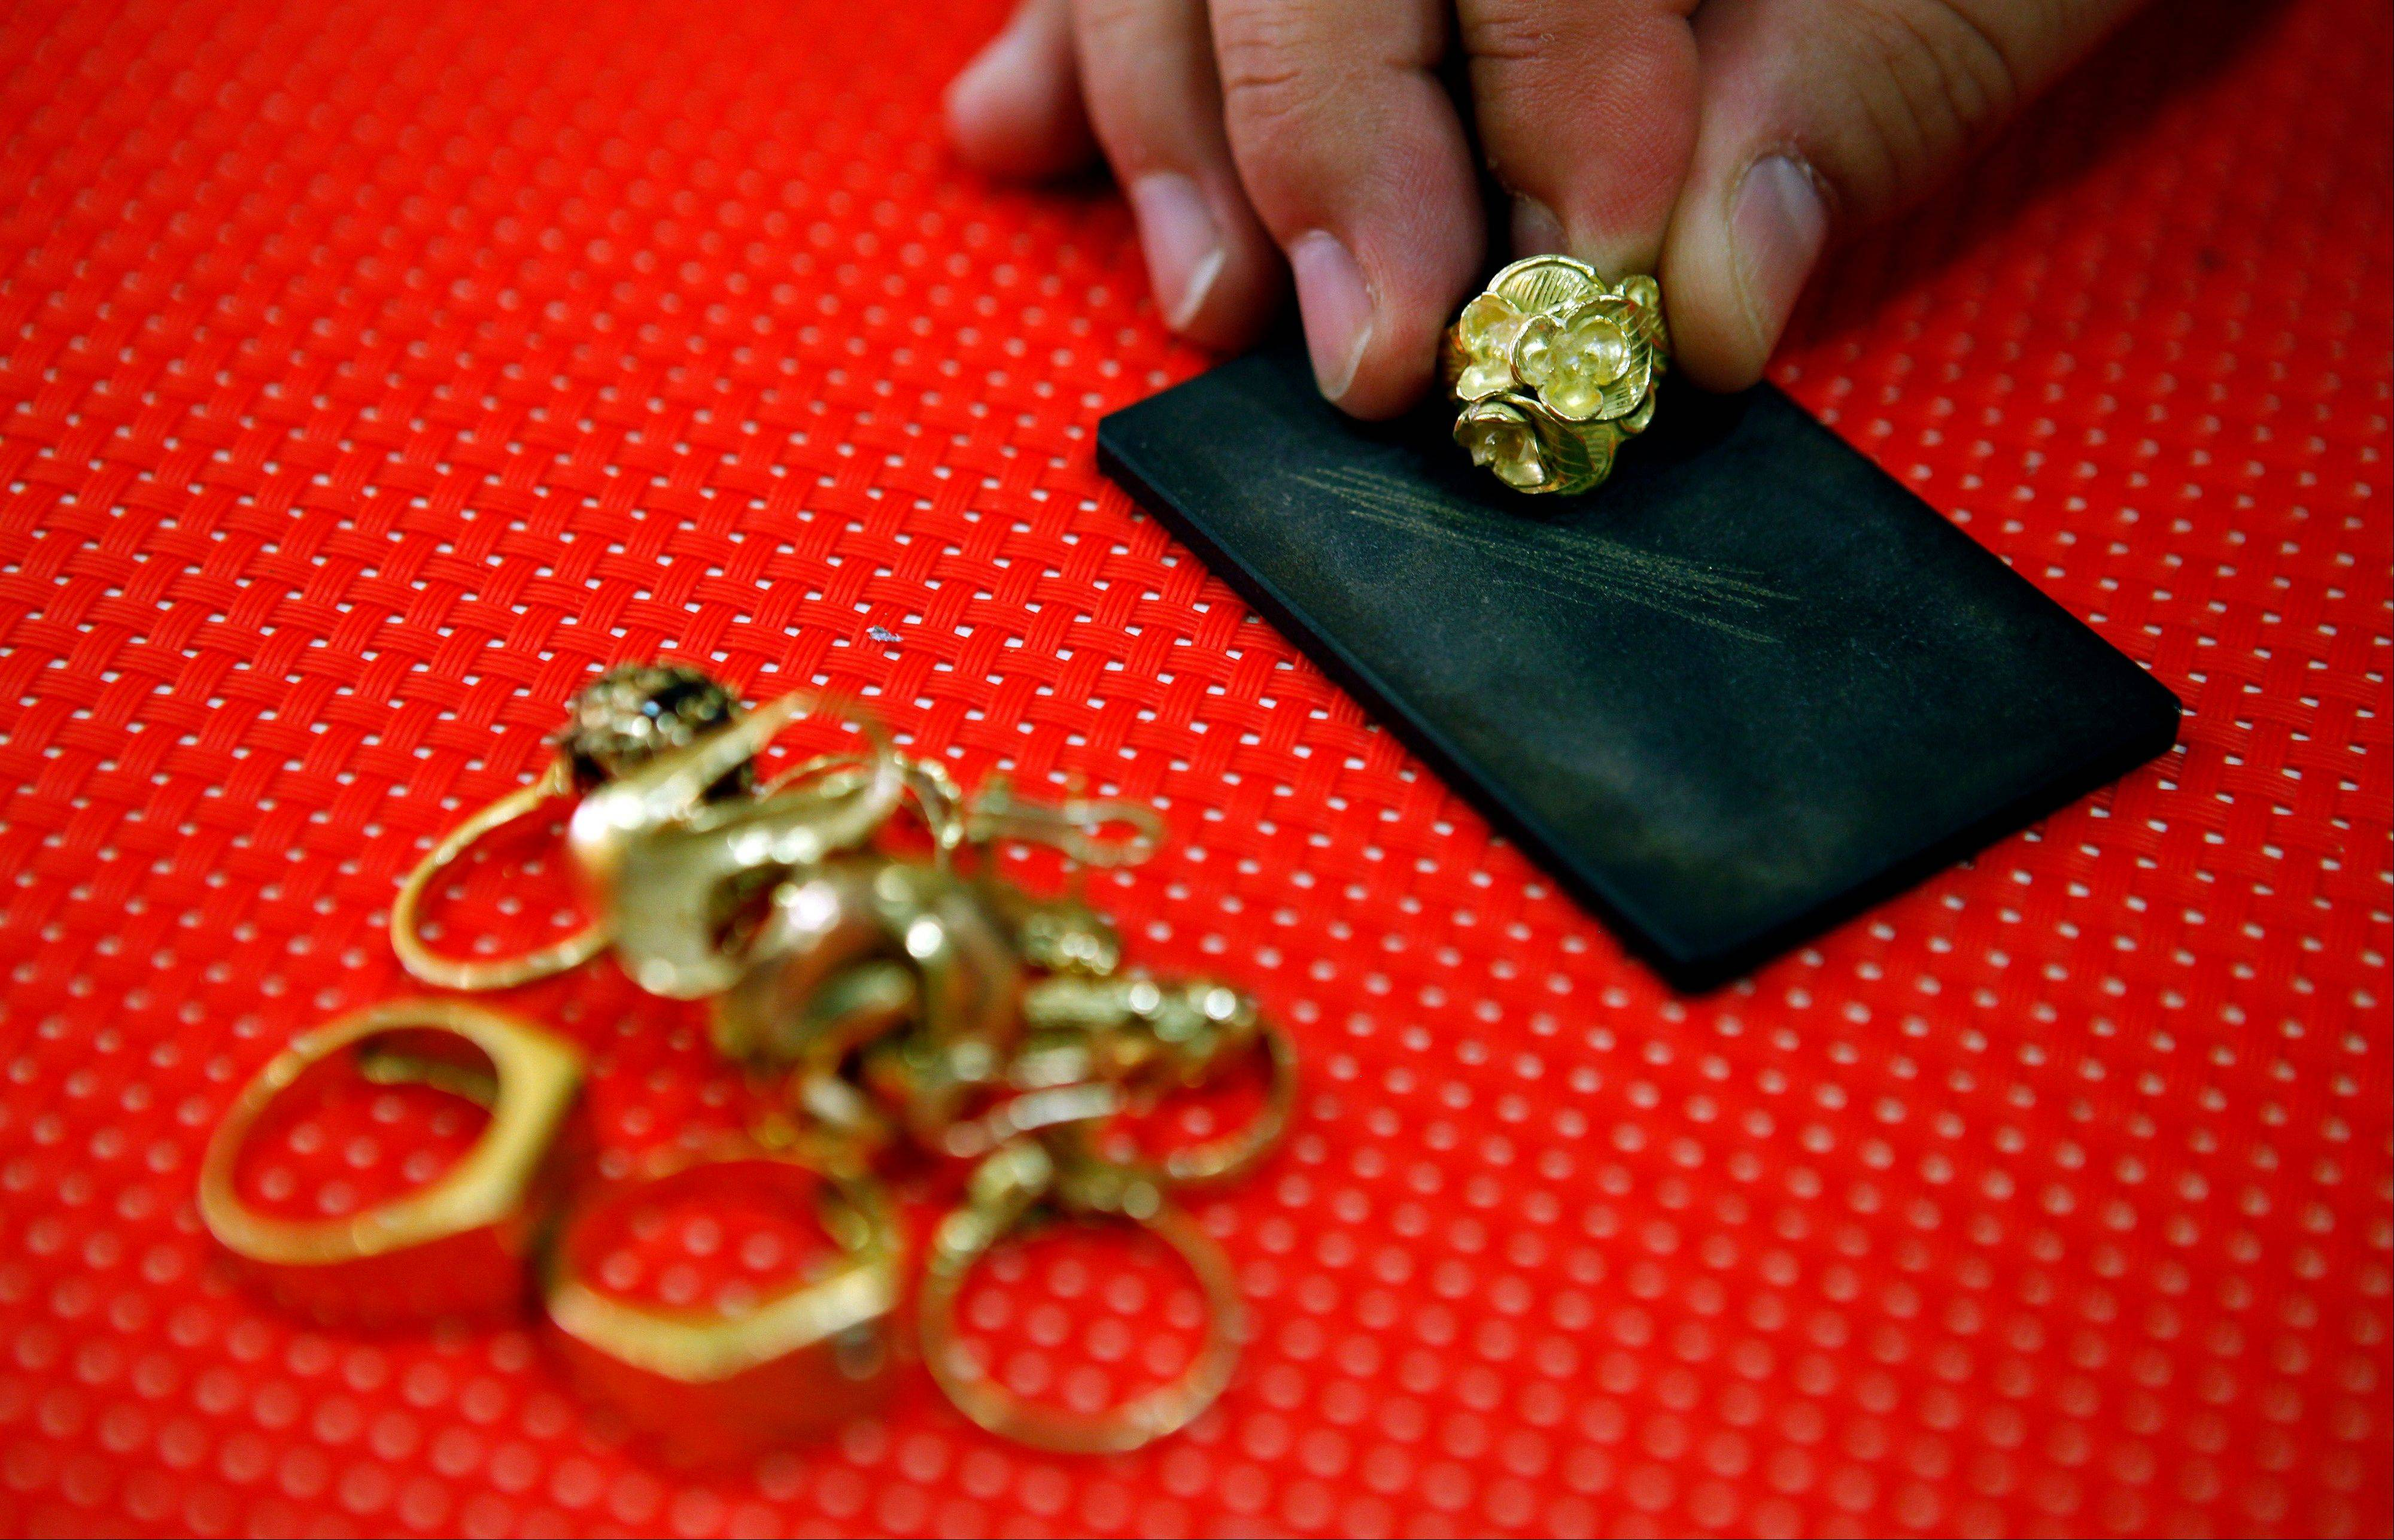 Gold, trading near a six-month high, may gain for a third day on speculation central banks from the U.S. to China will add to stimulus as economic data disappoints. Palladium rallied to the highest level in four months.